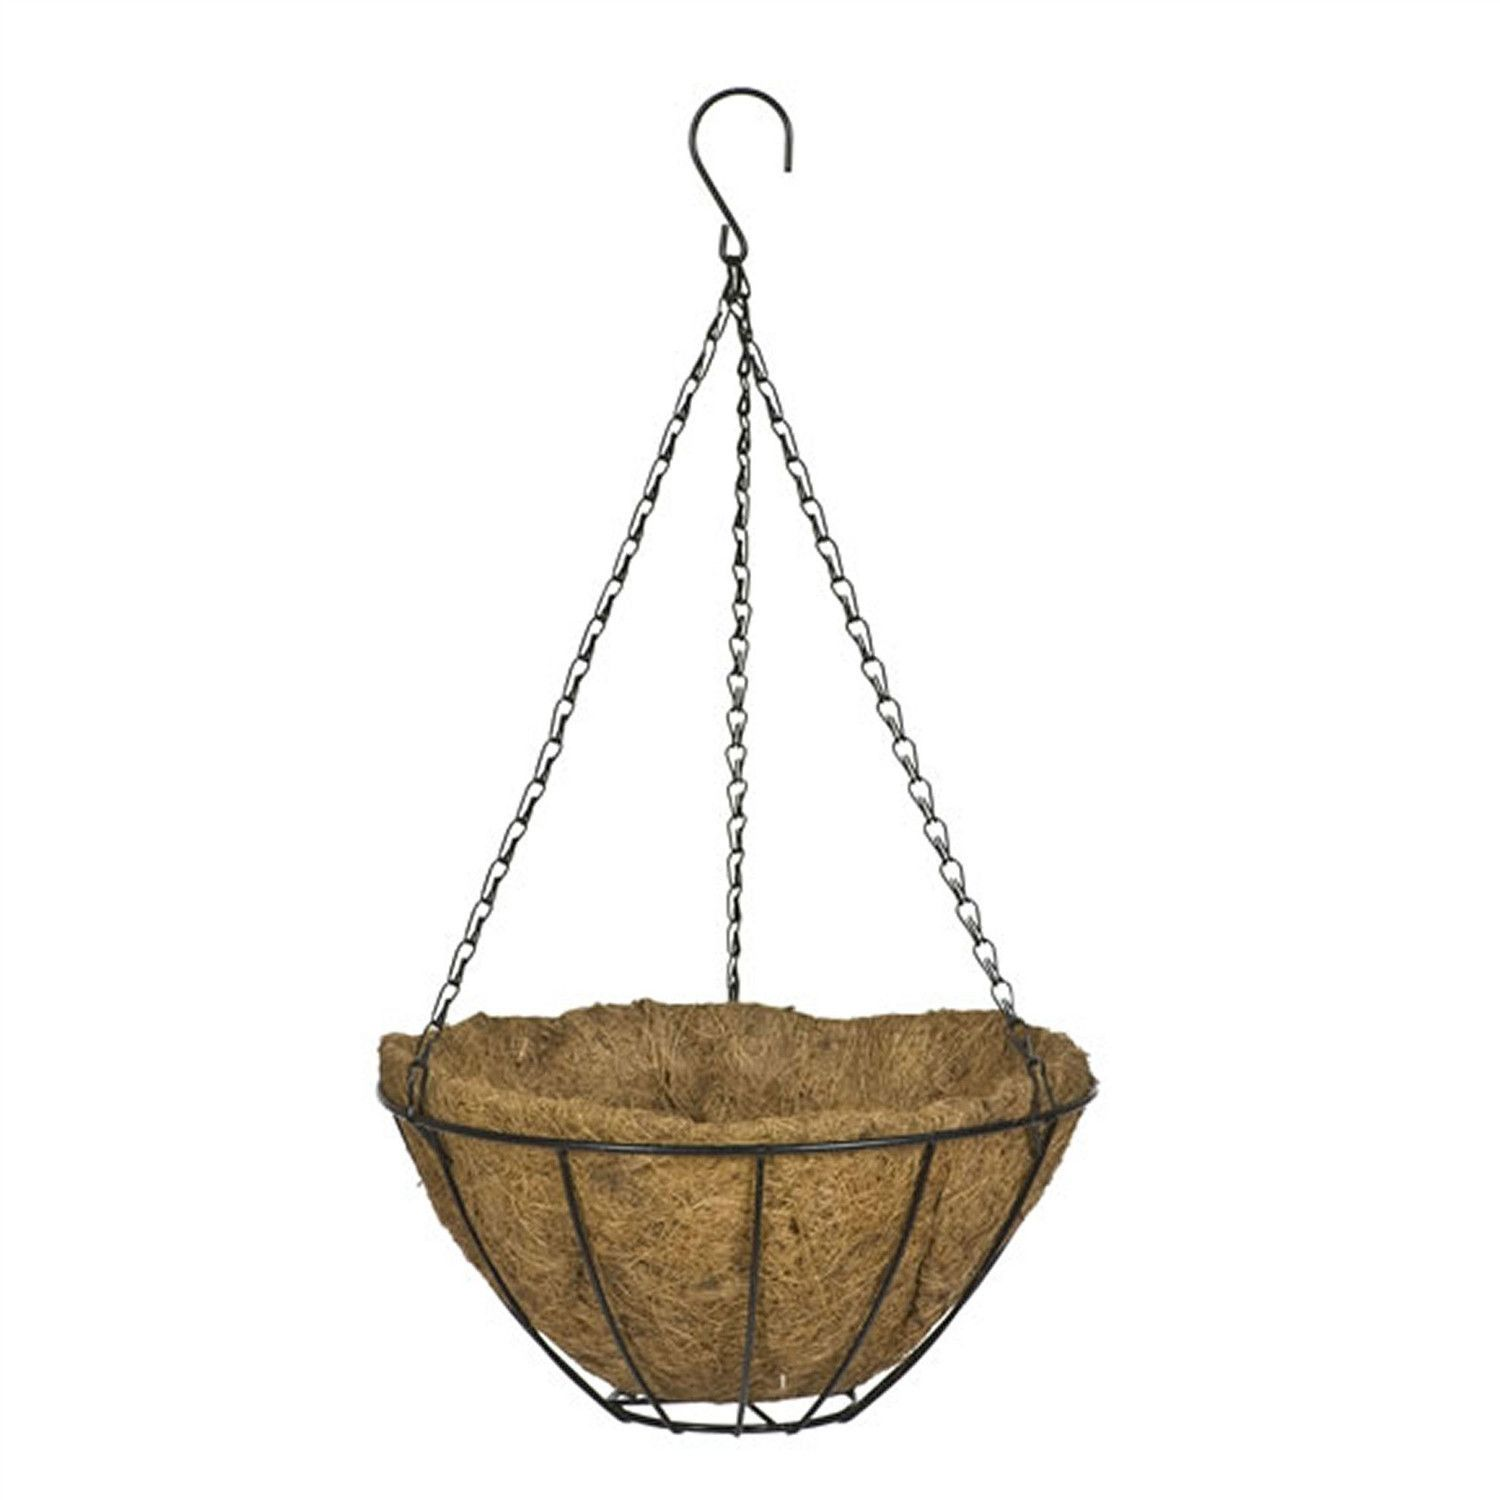 12 Inch Classic Metal Hanging Planter Basket In Black Metal Hanging Planters Hanging Planters Hanging Baskets